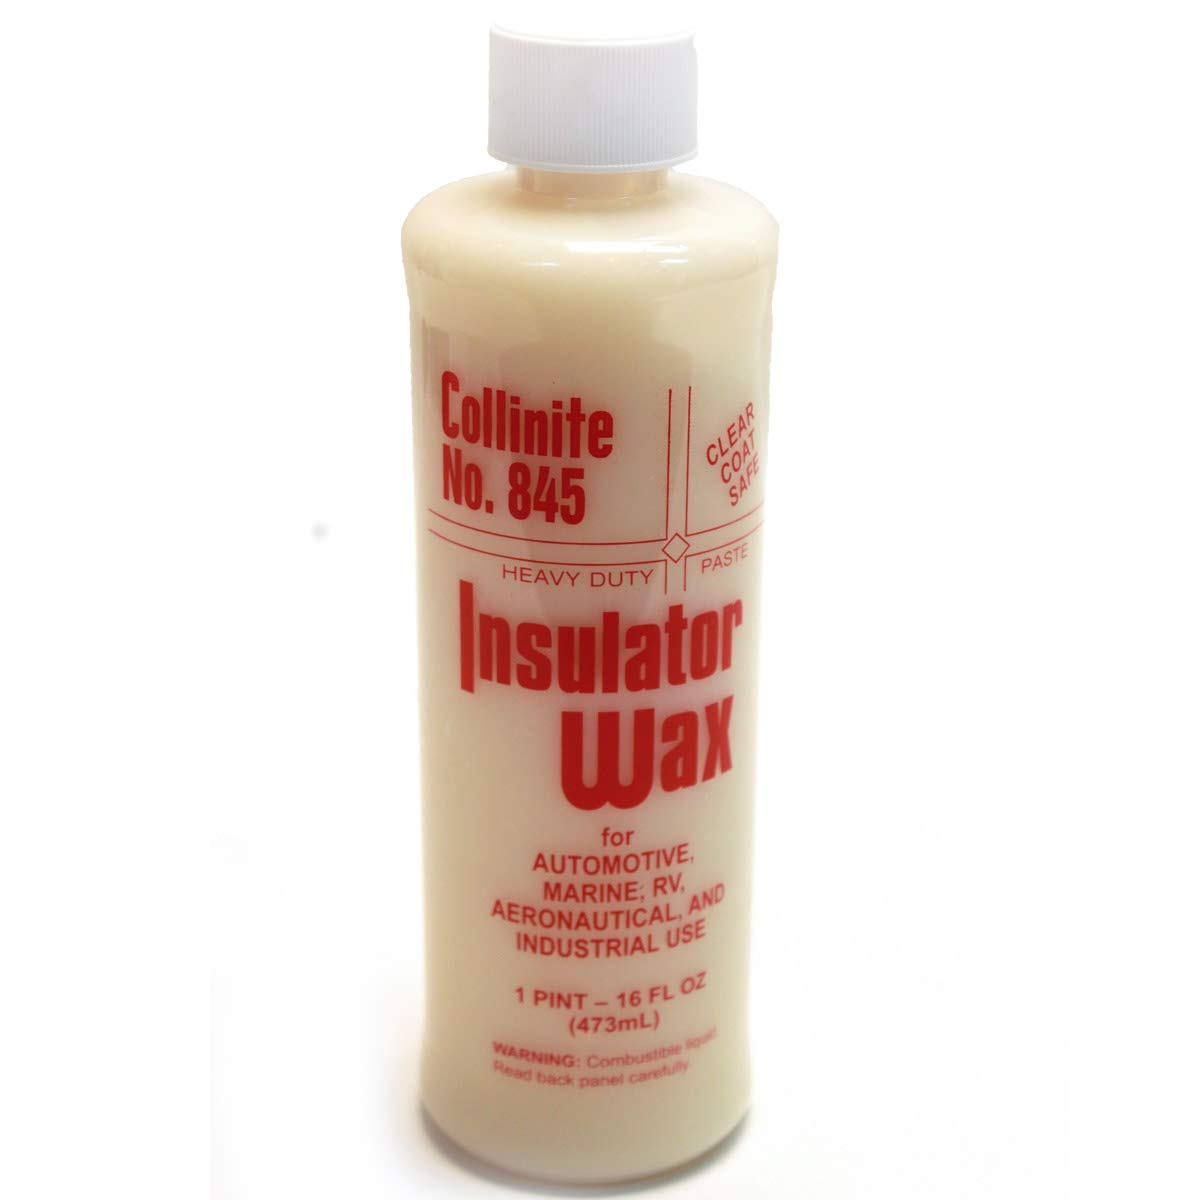 Collinite 845 Insulator Wax}